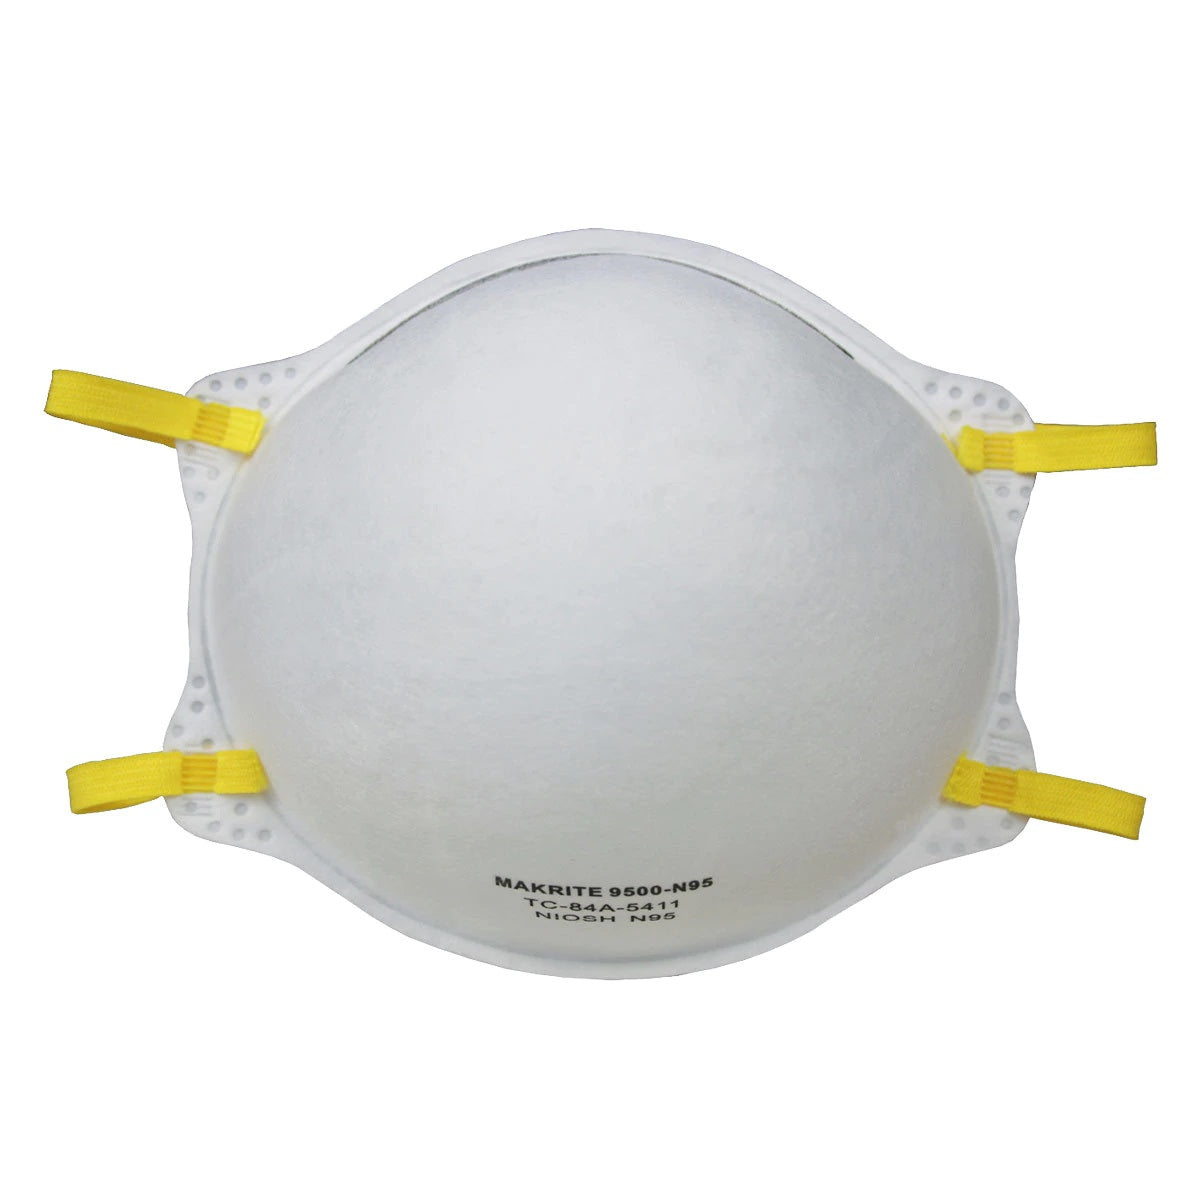 Makrite 9500-N95 Particulate Respirator Mask (5 Pack)